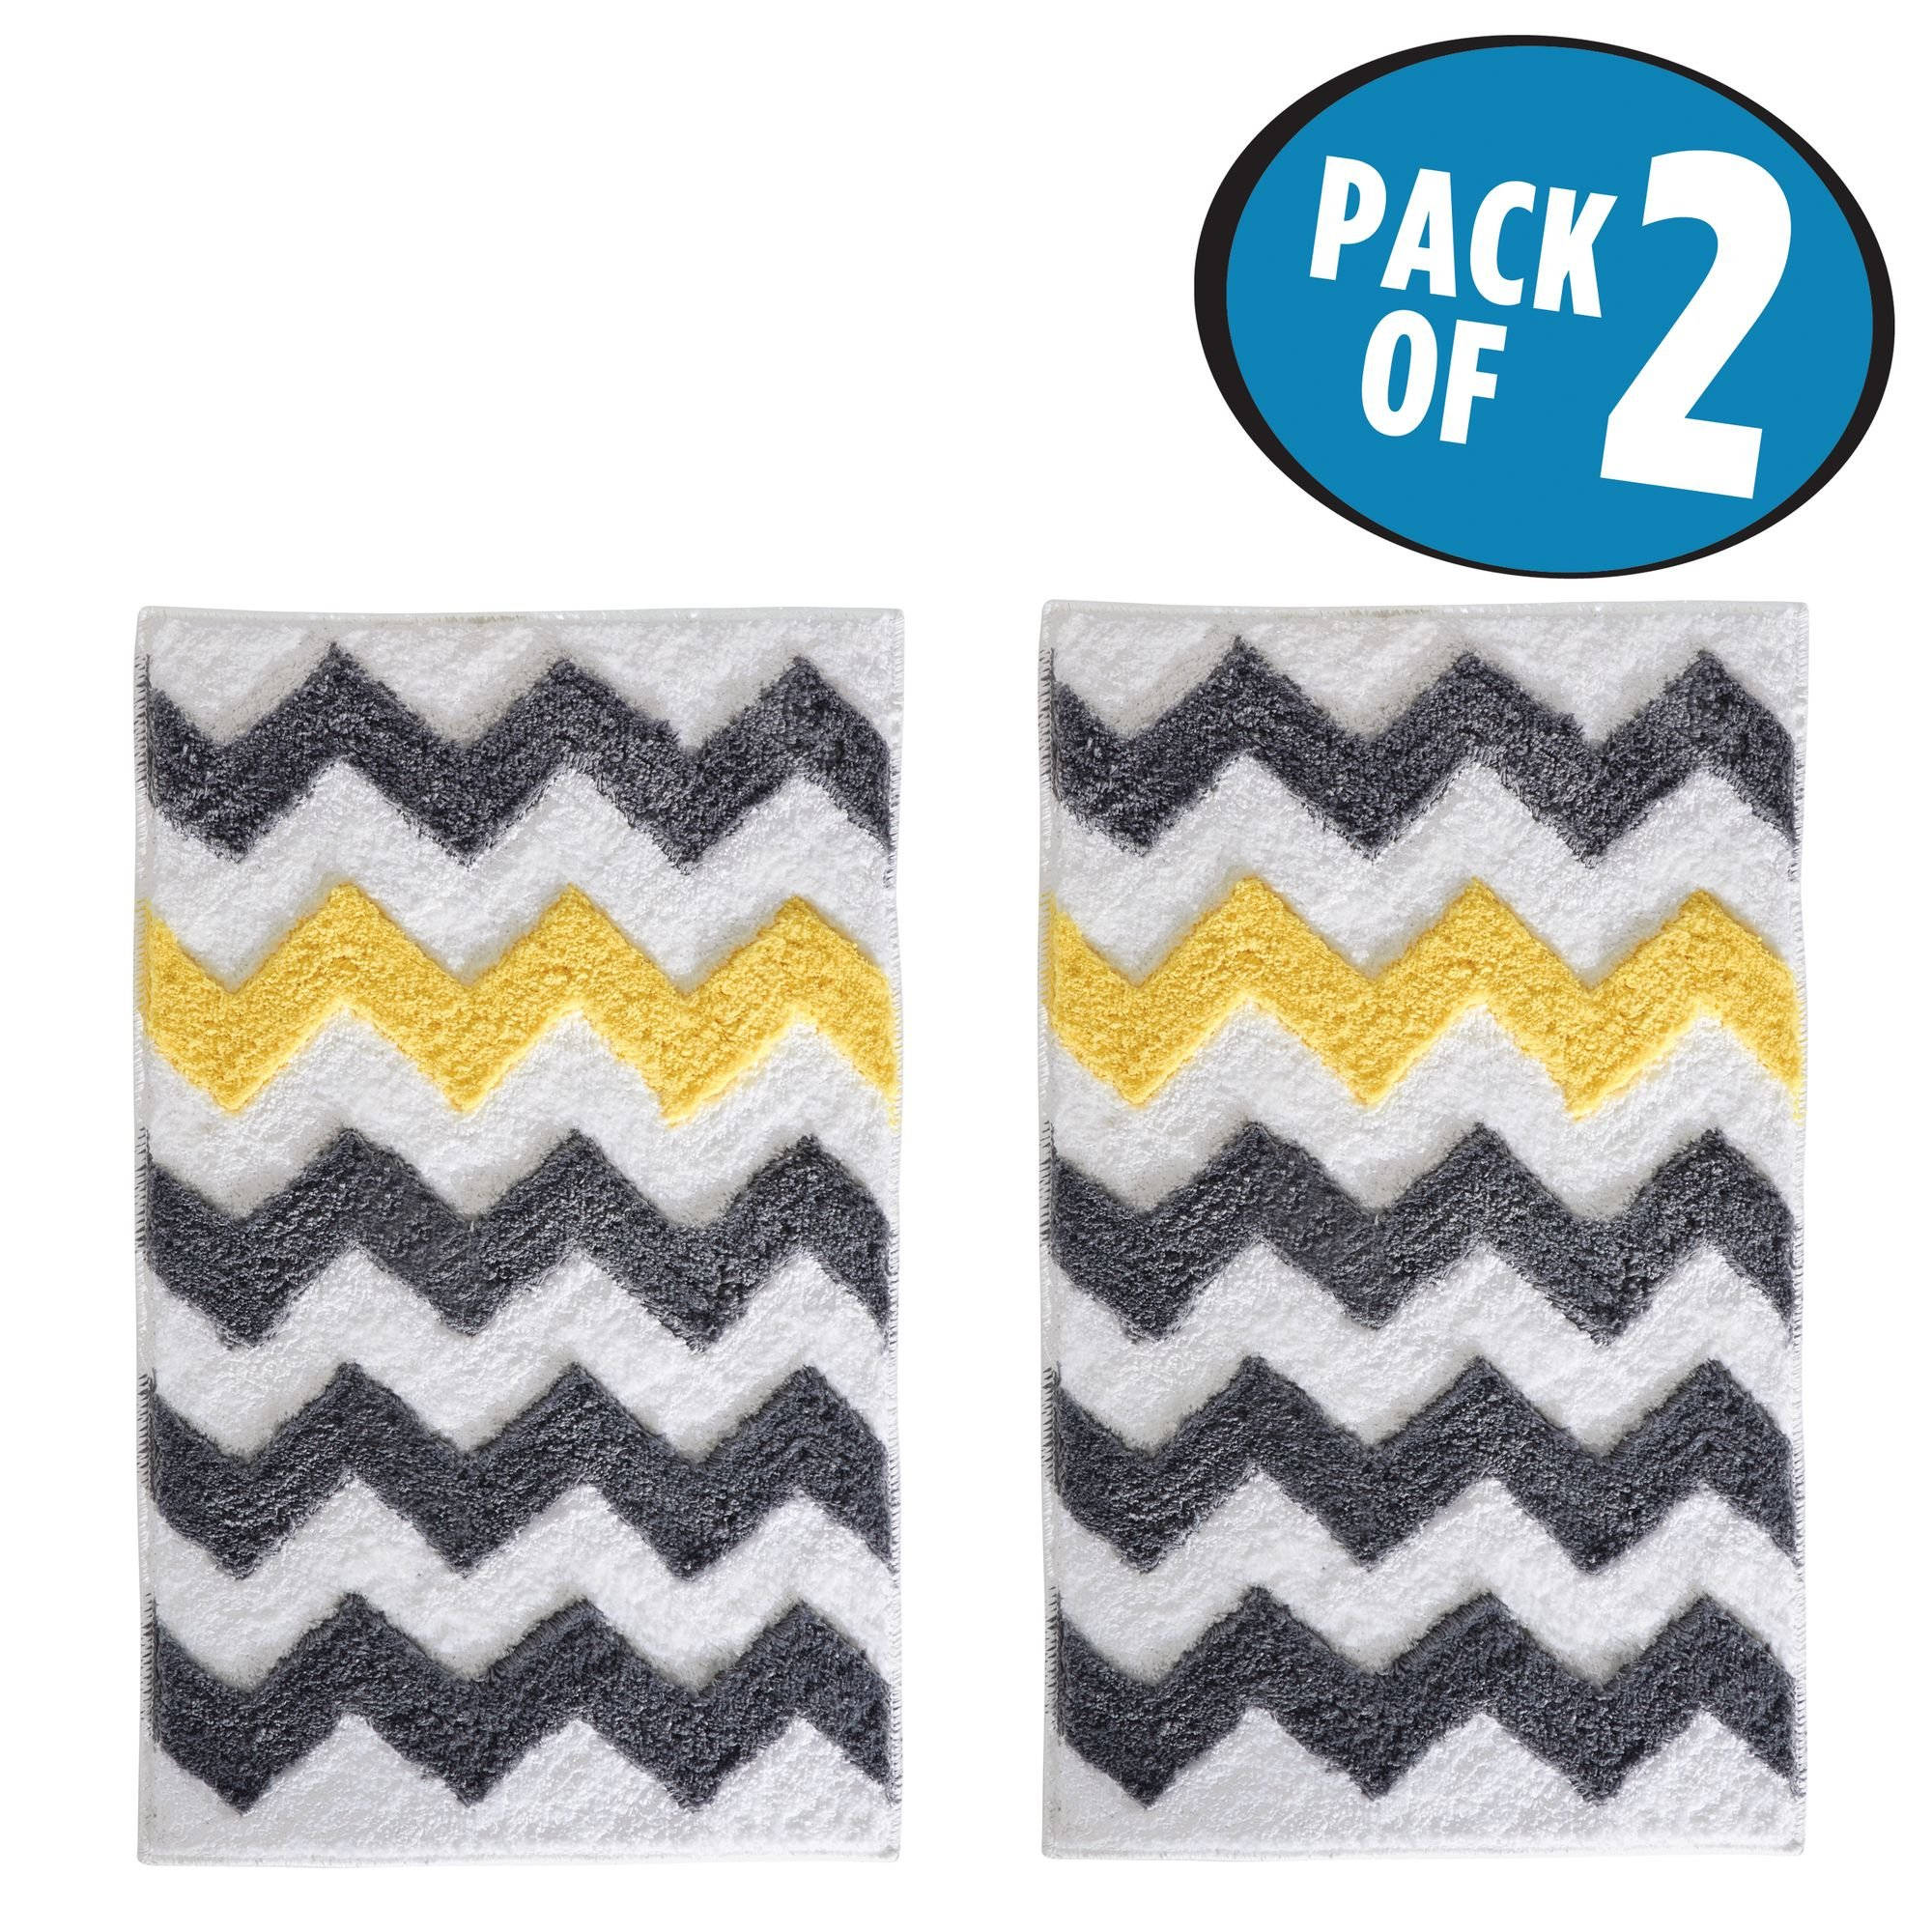 mDesign Soft Microfiber Polyester Non-Slip Rectangular Spa Mat Rug, Plush Water Absorbent, Chevron Pattern - for Bathroom Vanity, Bathtub/Shower, Machine Washable - 34'' x 21'' - Pack of 2, Gray/Yellow